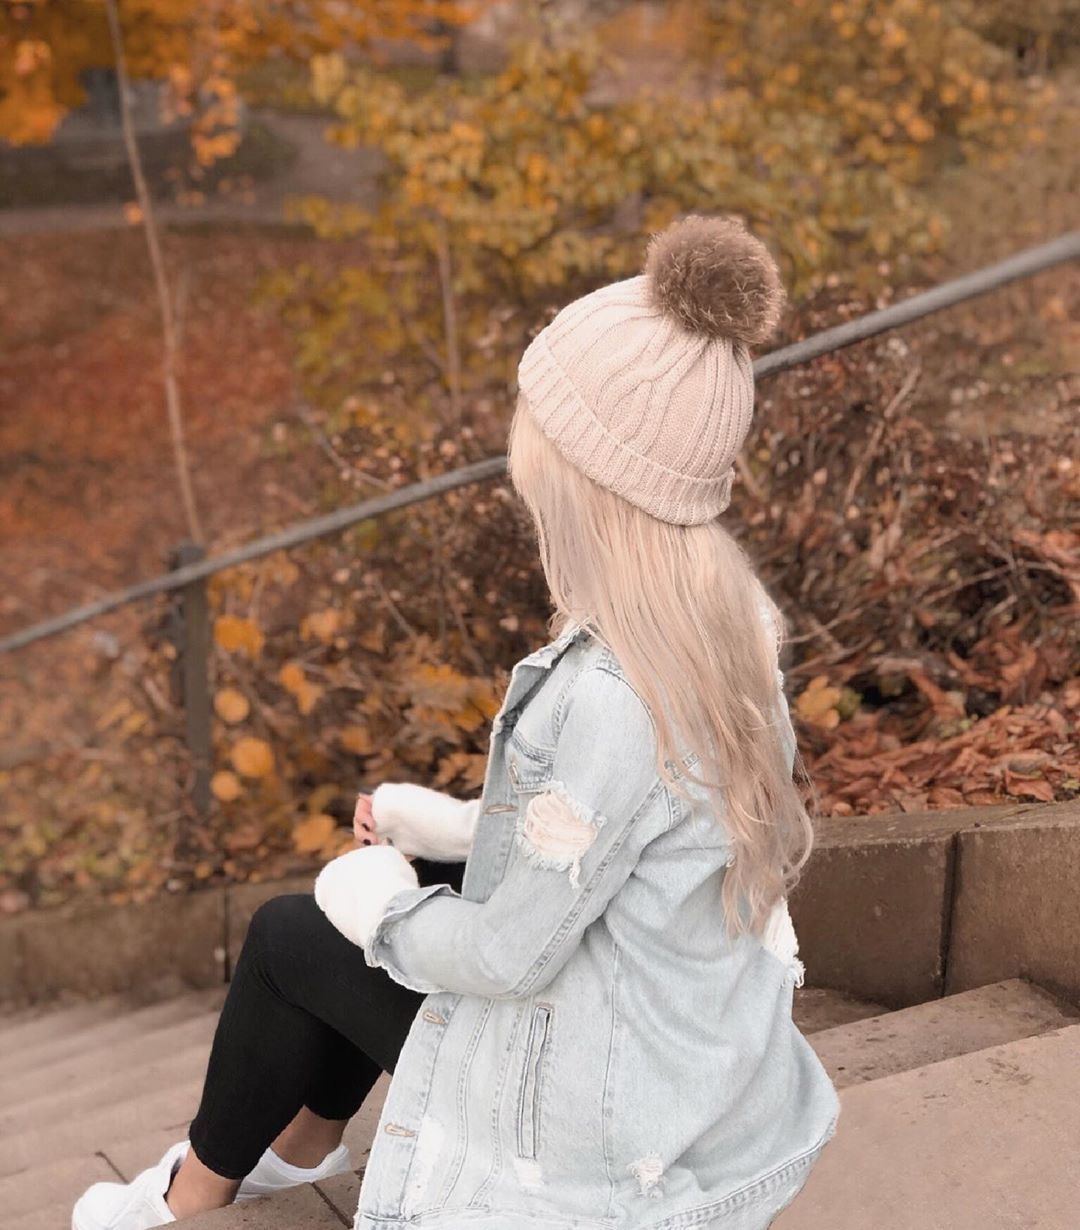 follow us for more cozy autumn days